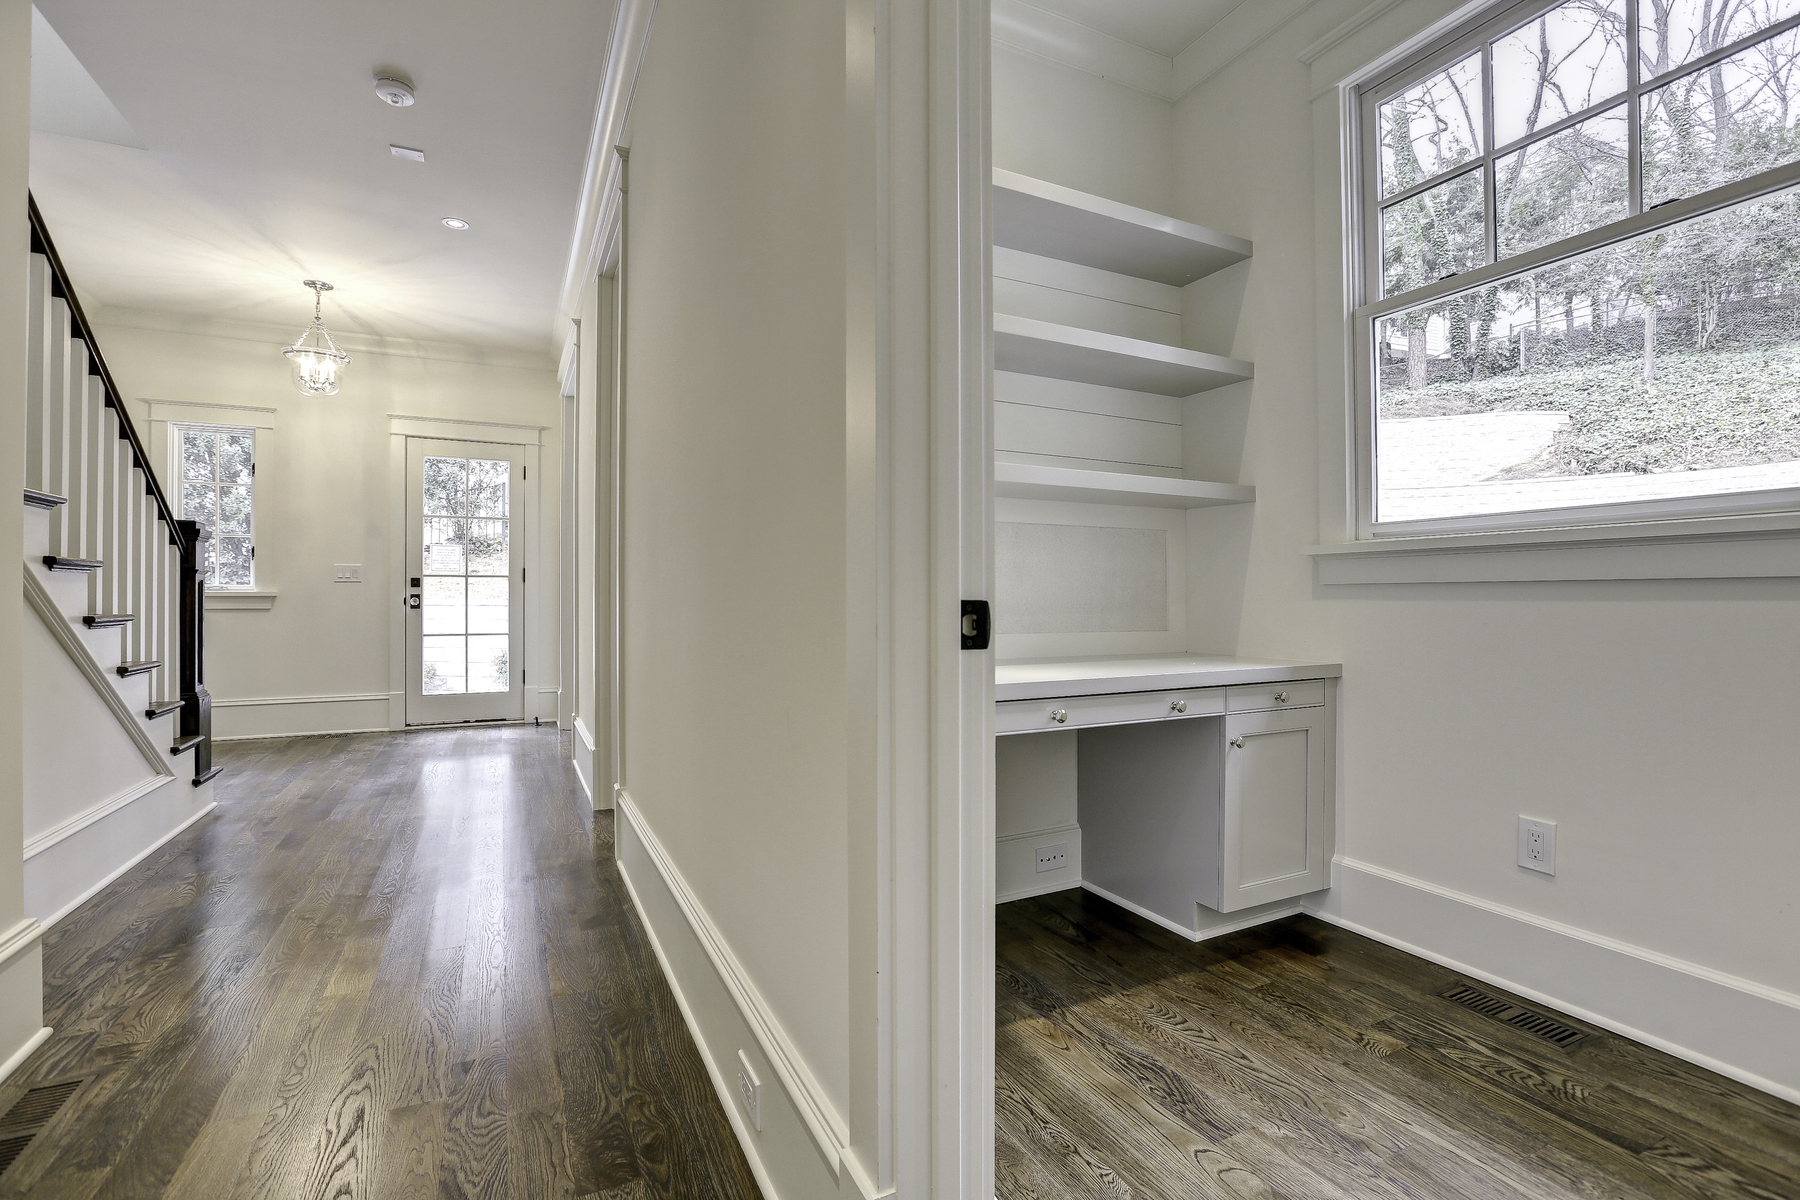 Additional photo for property listing at Deluxe Custom New Construction by Jackbilt Homes on Sought-After Street 479 Argonne Drive NW Atlanta, Geórgia 30305 Estados Unidos